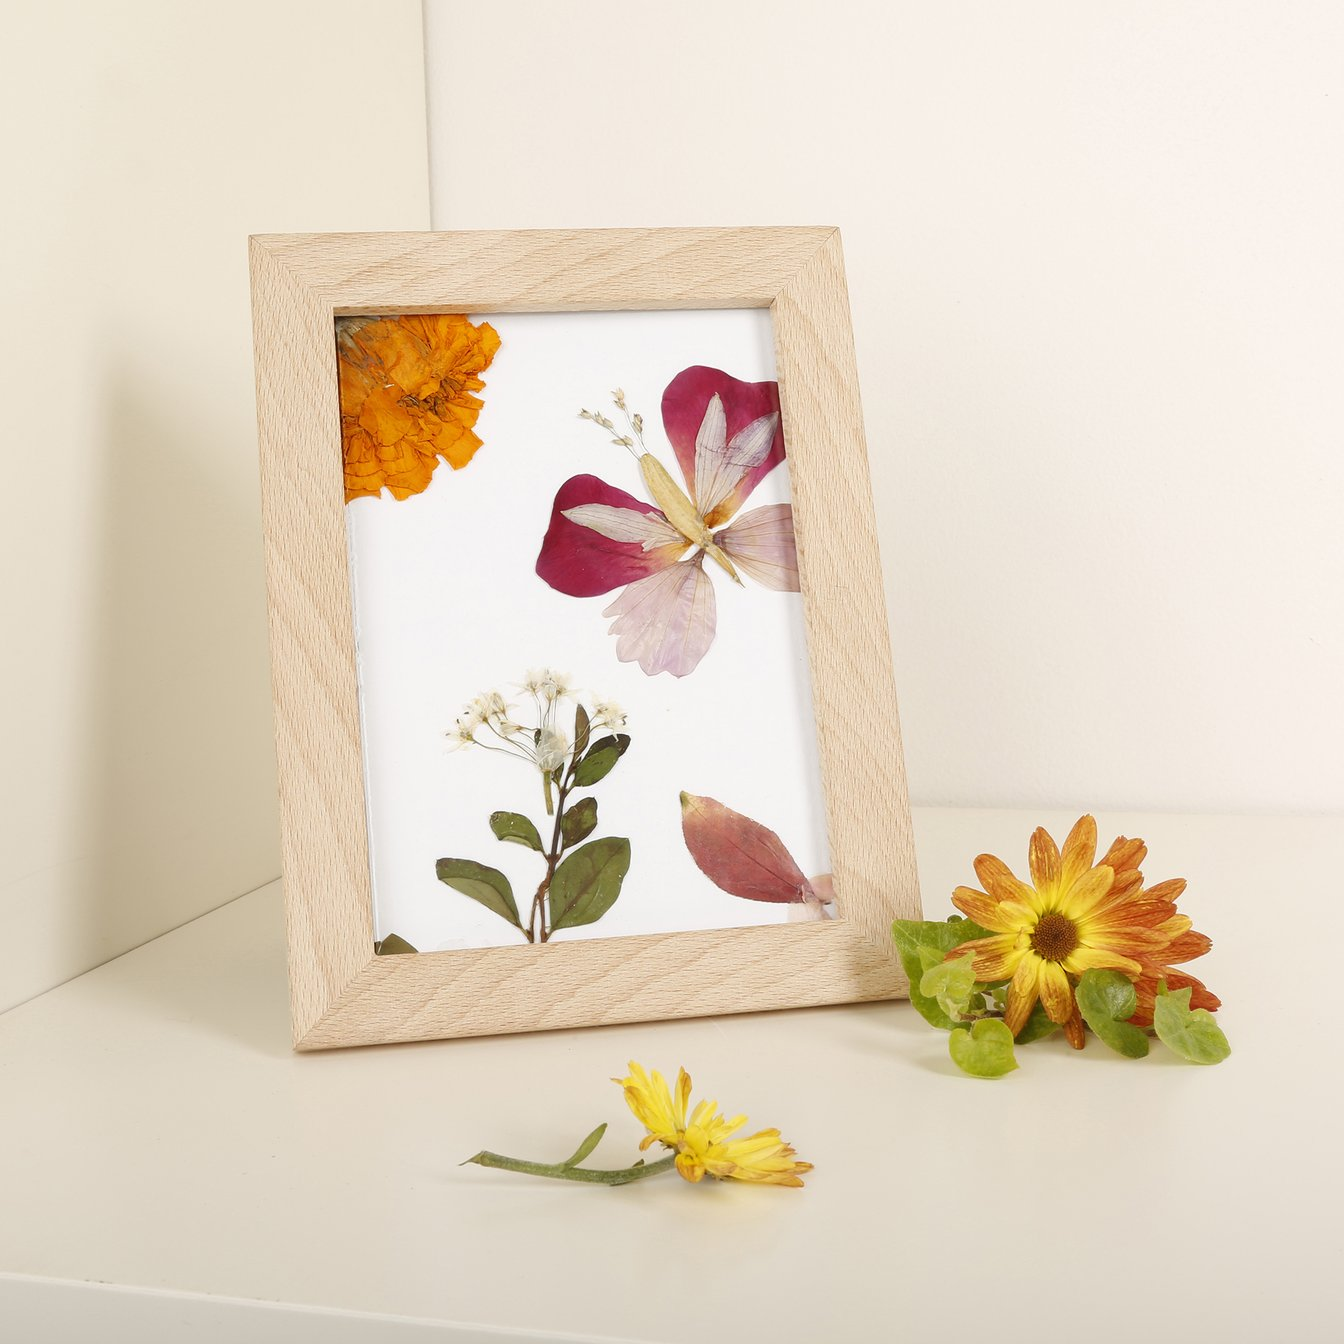 Make your Own Pressed Flower Art Frame